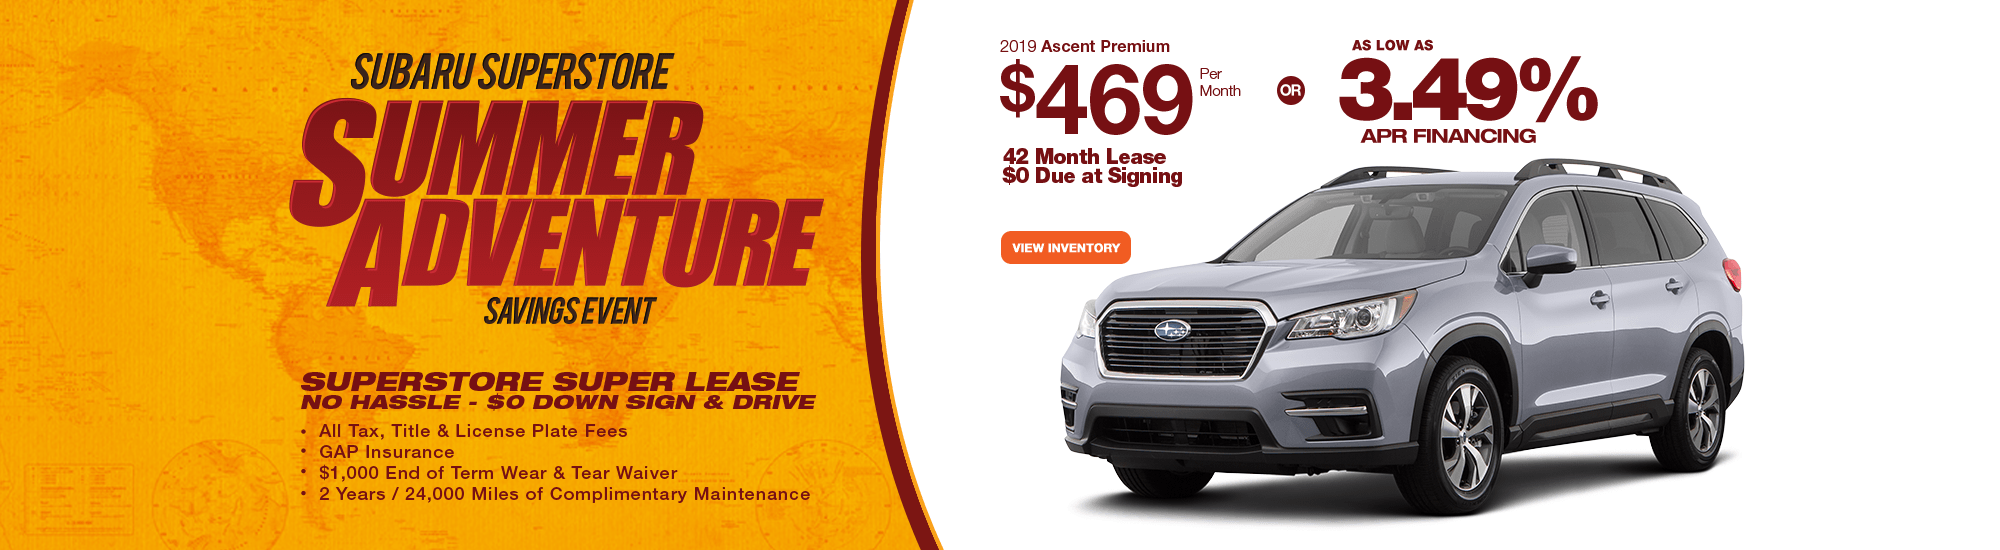 Save with our new leasing and financing special savings on 2019 Subaru Ascent Premium near Surprise, AZ